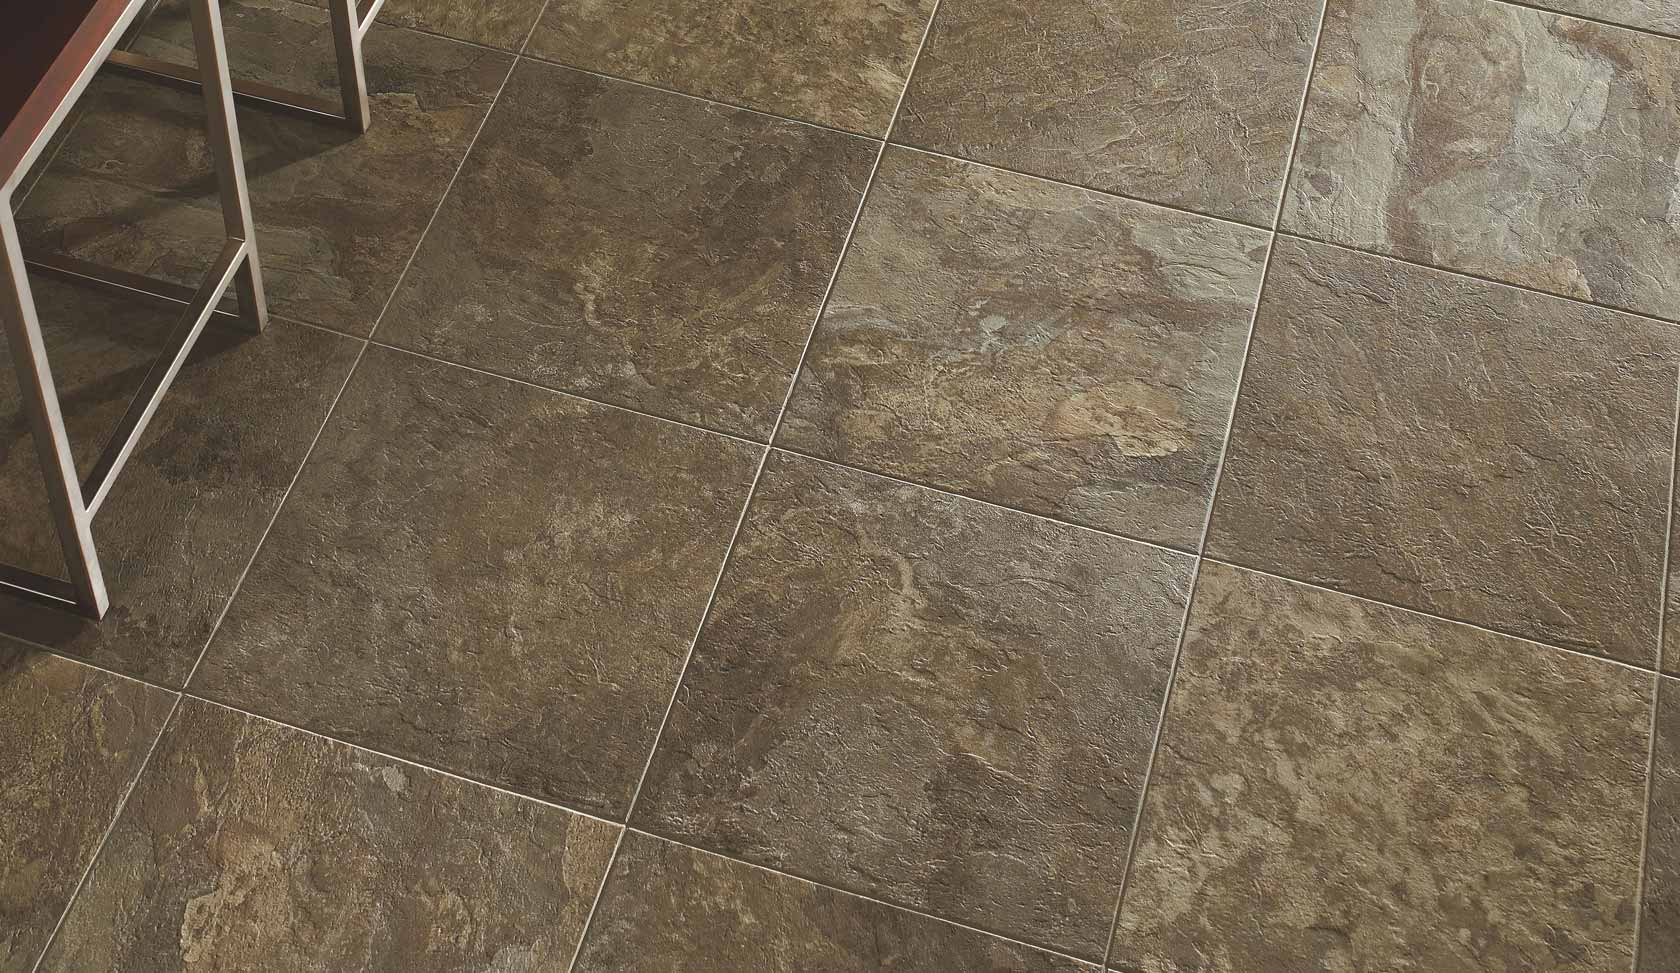 Ultra ceramic vinyl tile toma fine floors vinyltile03 dailygadgetfo Image collections